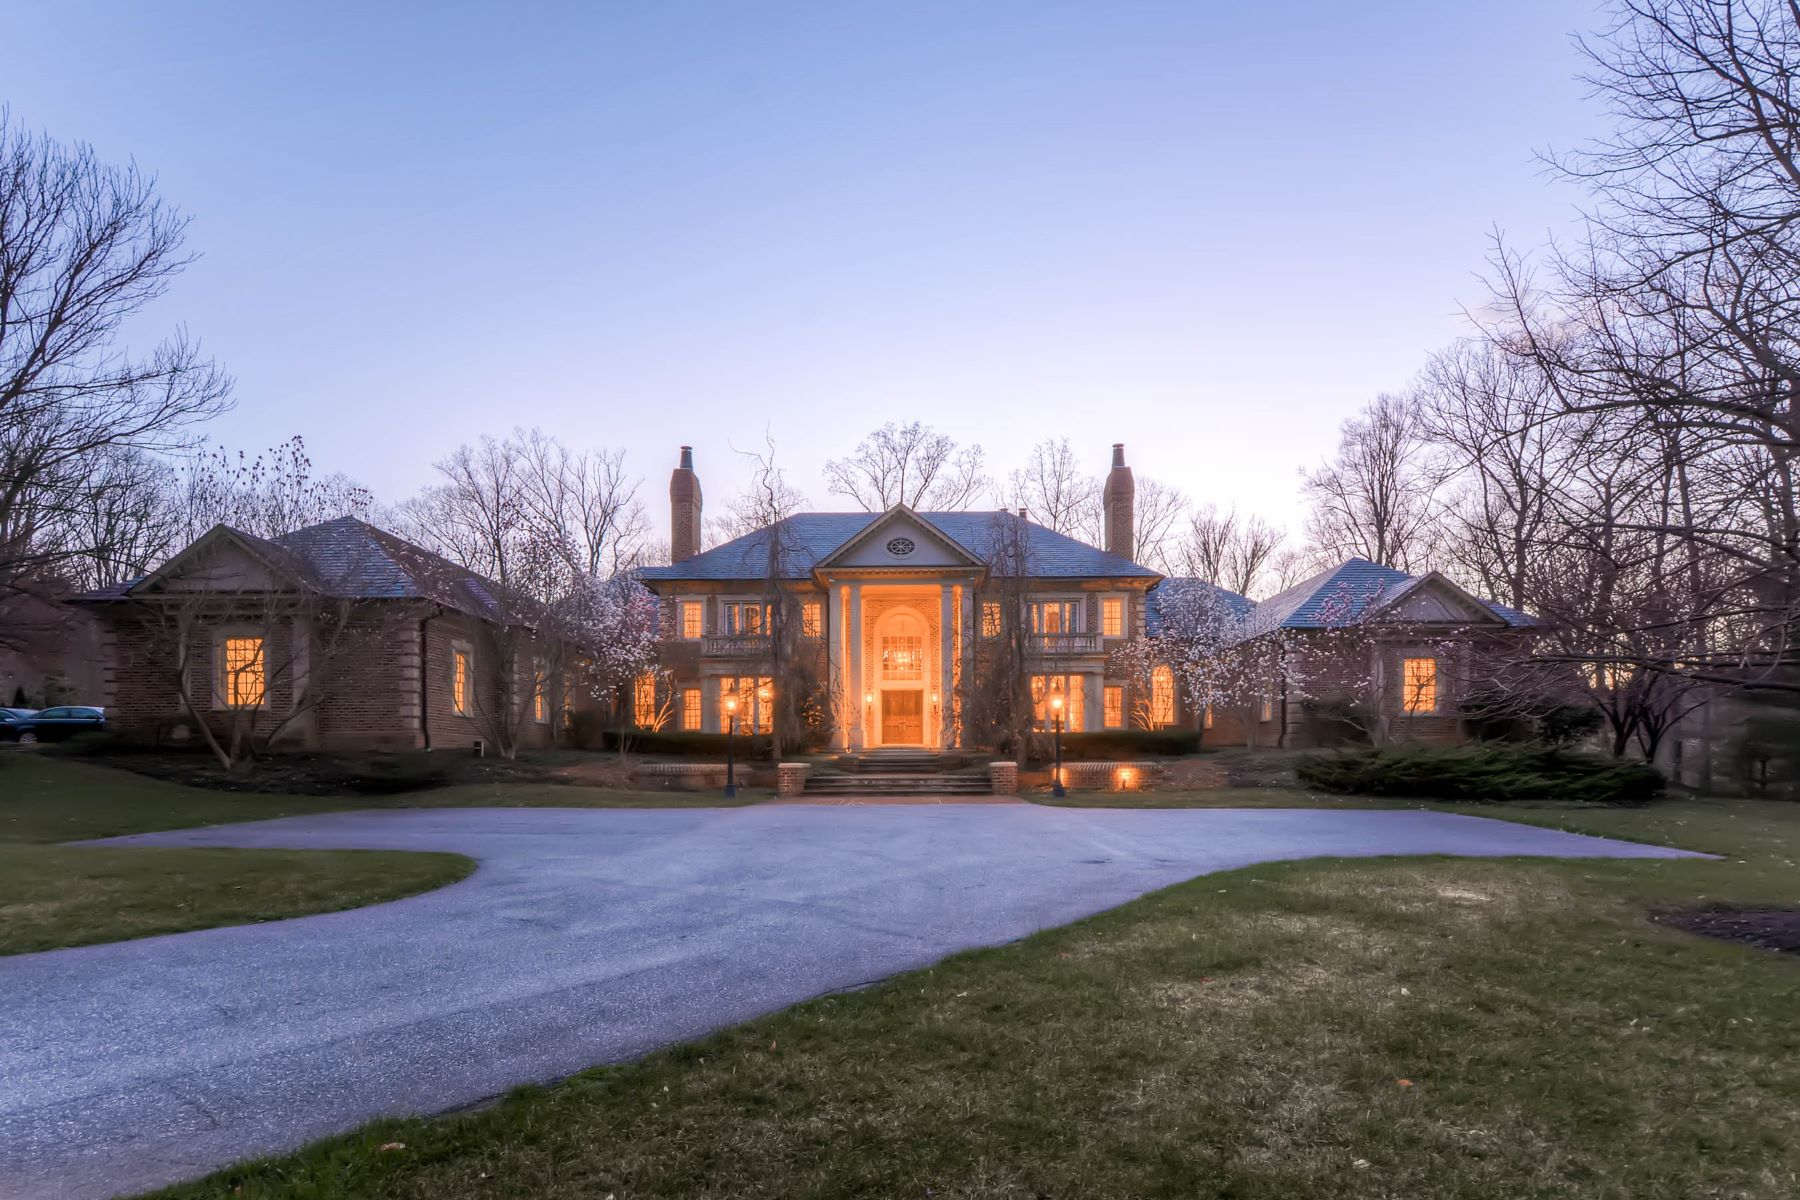 Single Family Home for Sale at 3 Anton North 3 Anton North Way Pikesville, Maryland, 21208 United States